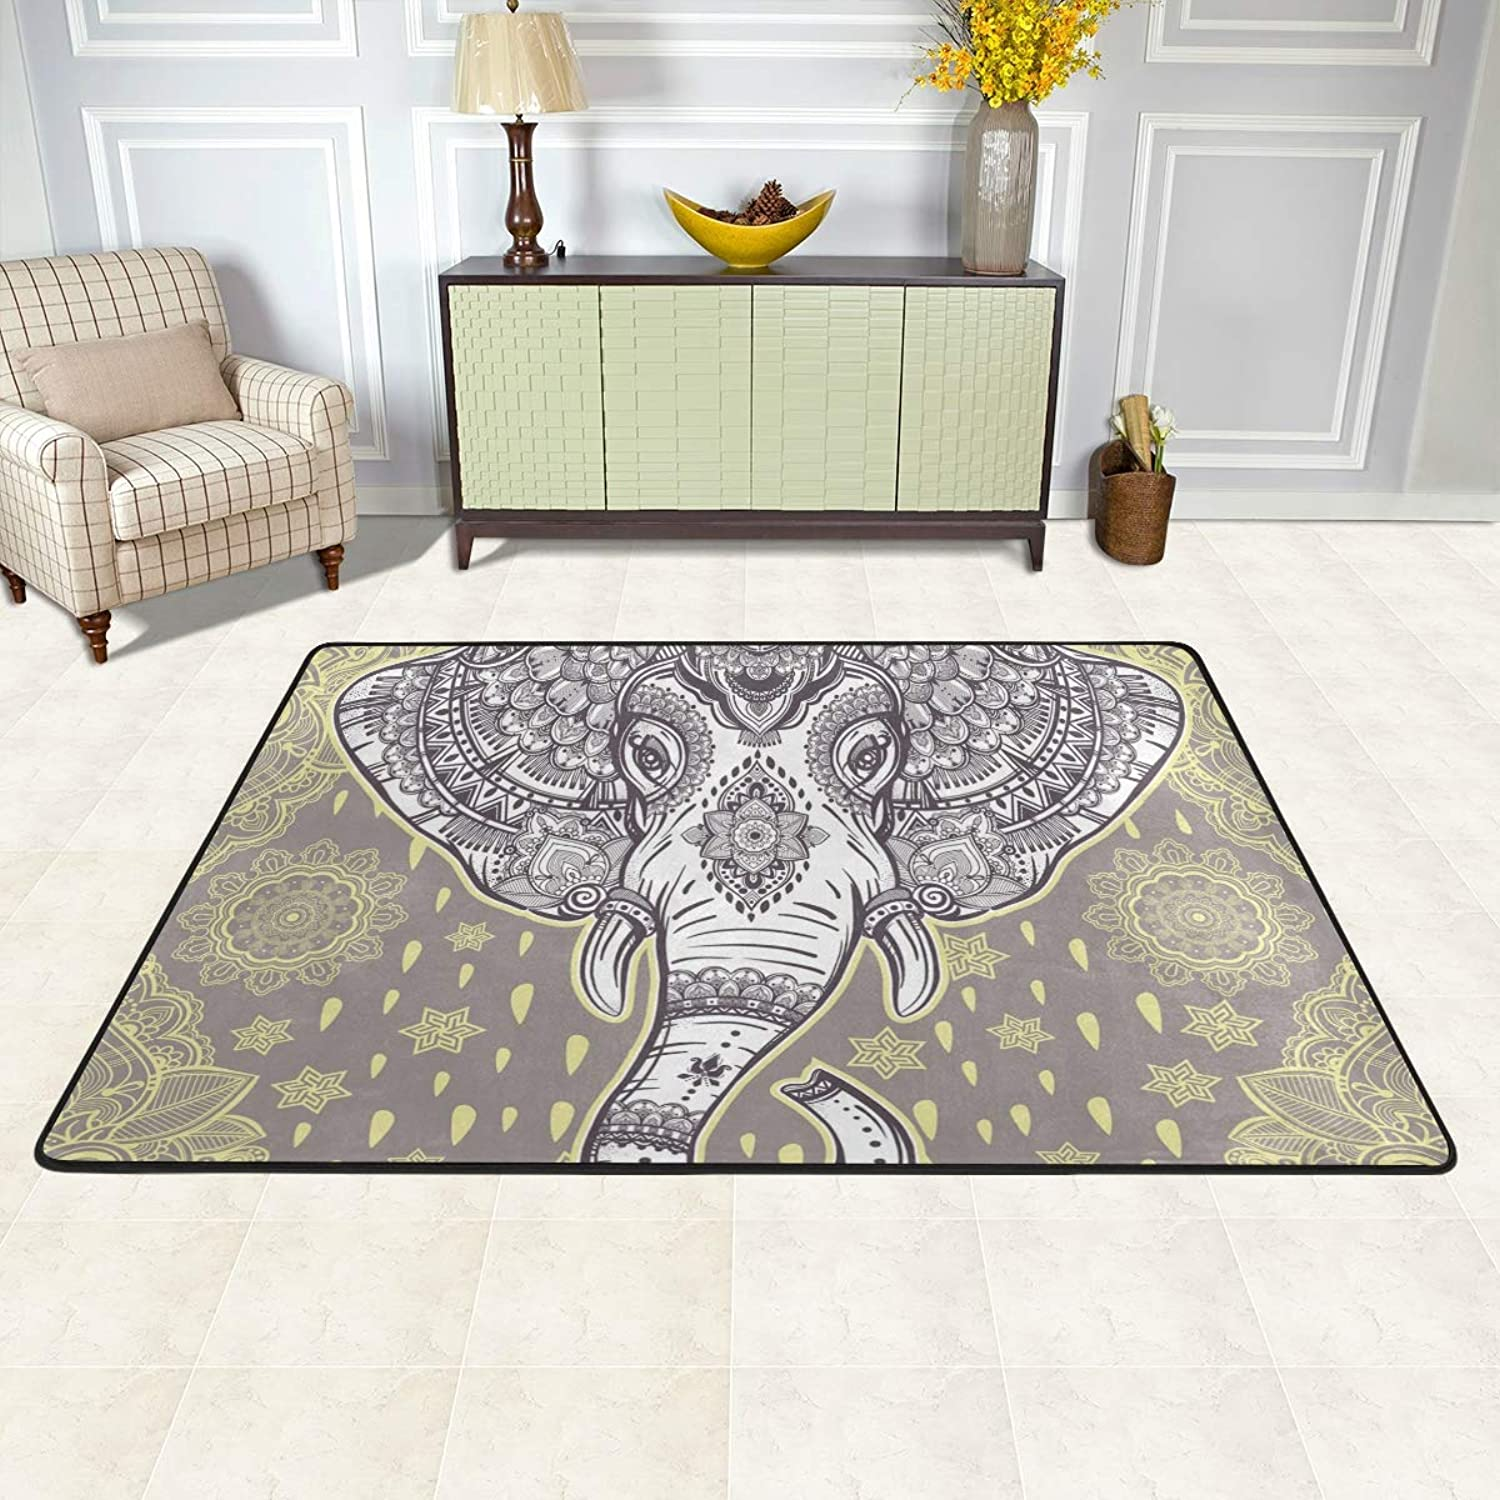 MALPLENA Boho Ethnic Elephant Rugs for Living Room Doormat Carpet Floor Mats shoes Scraper for Living Room Dining Room Bedroom Kitchen Non Slip